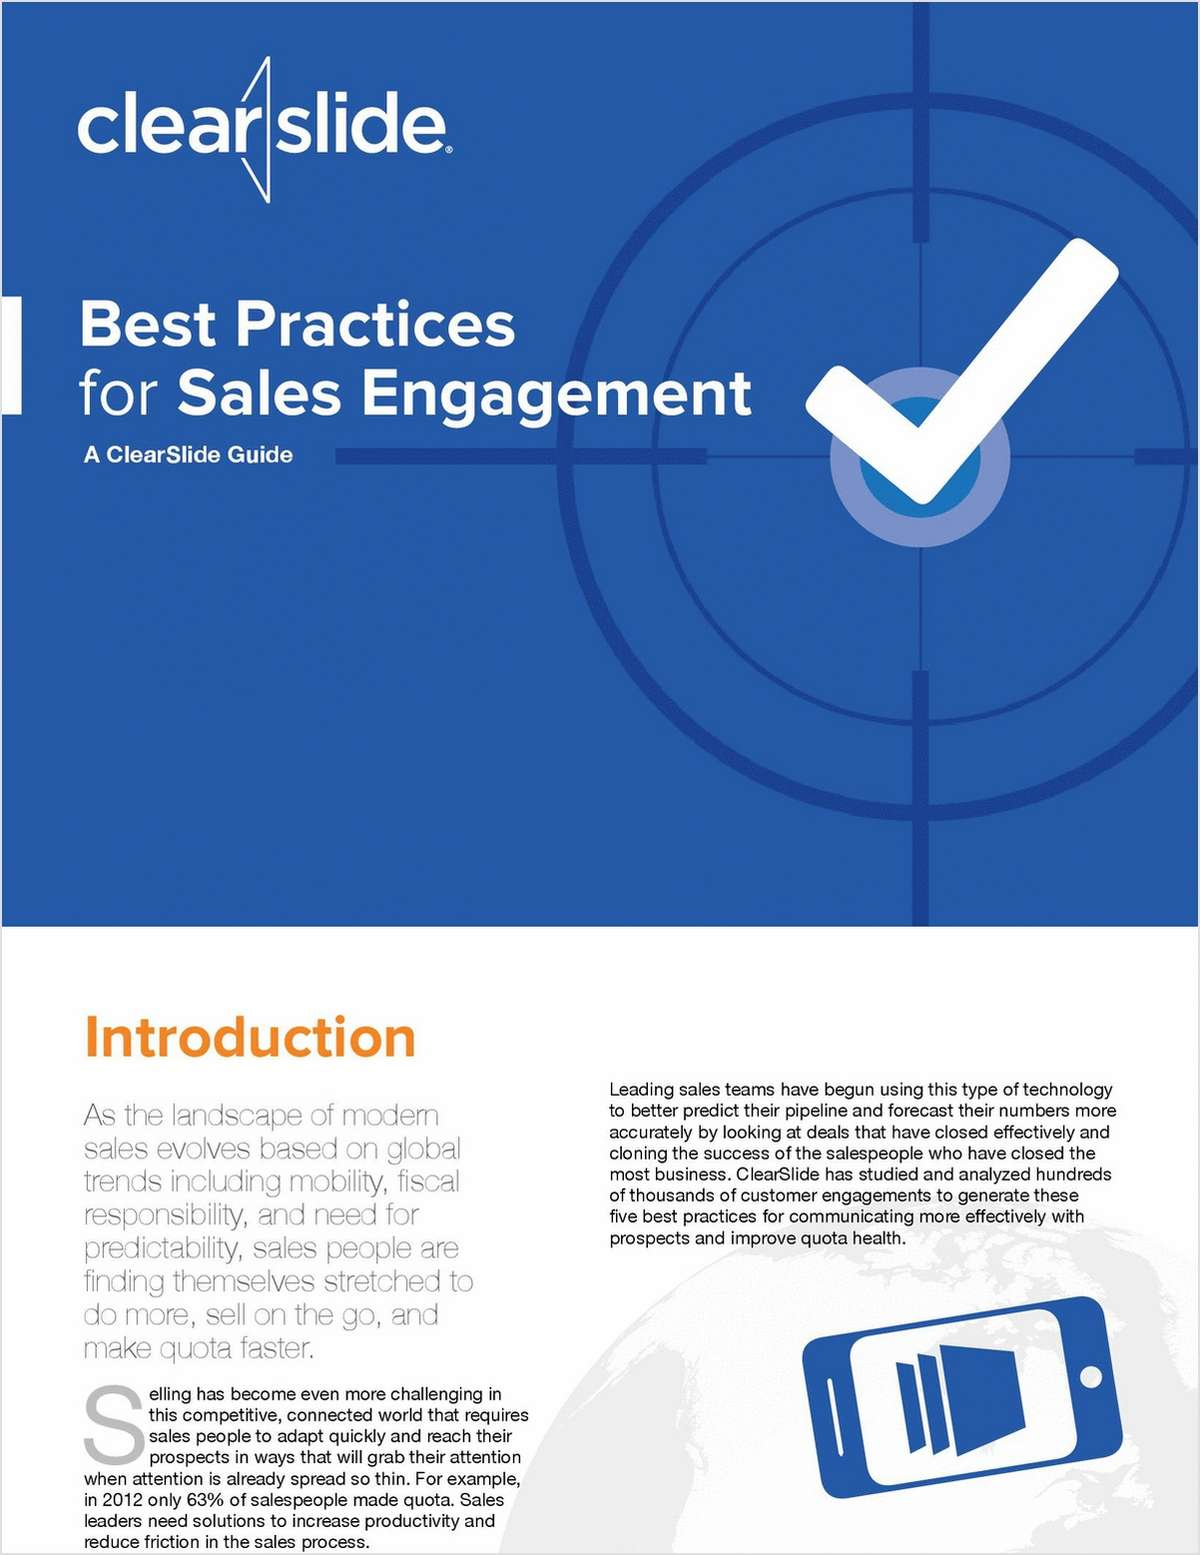 Best Practices for Sales Engagement